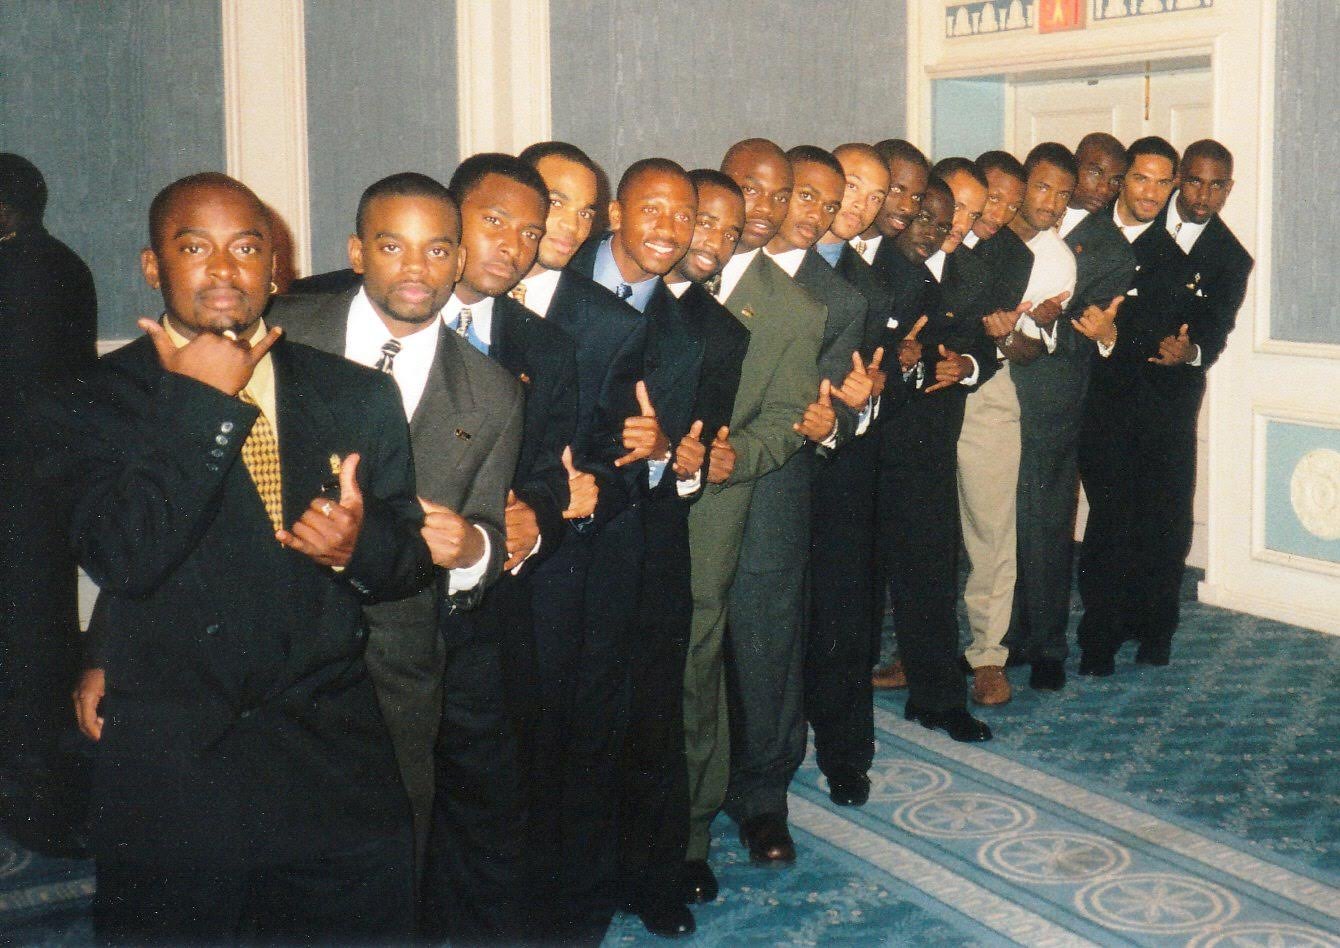 A-25 (Fall '98) and I-25 (Spr '99) lined up as a chapter in Dallas, TX at the 83rd General Conventio